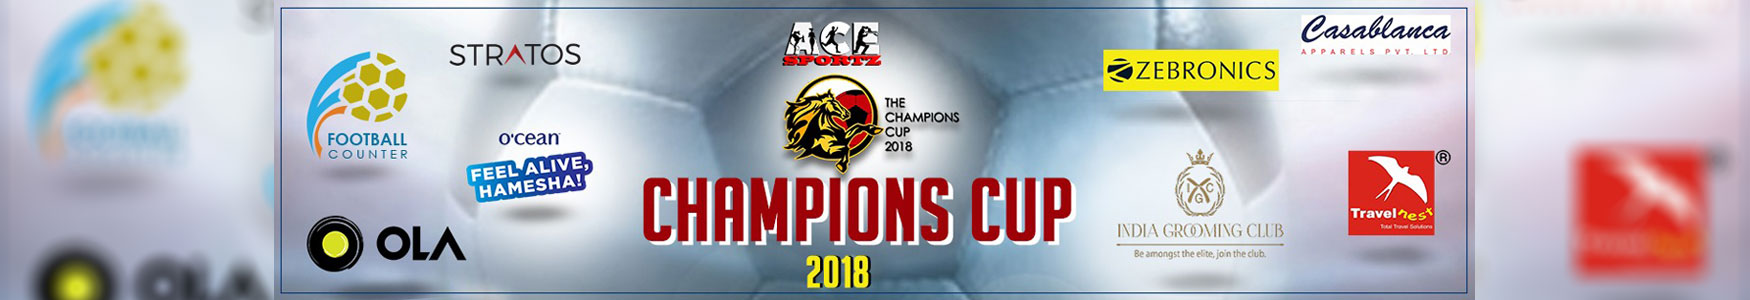 Ace Champions Cup 2018